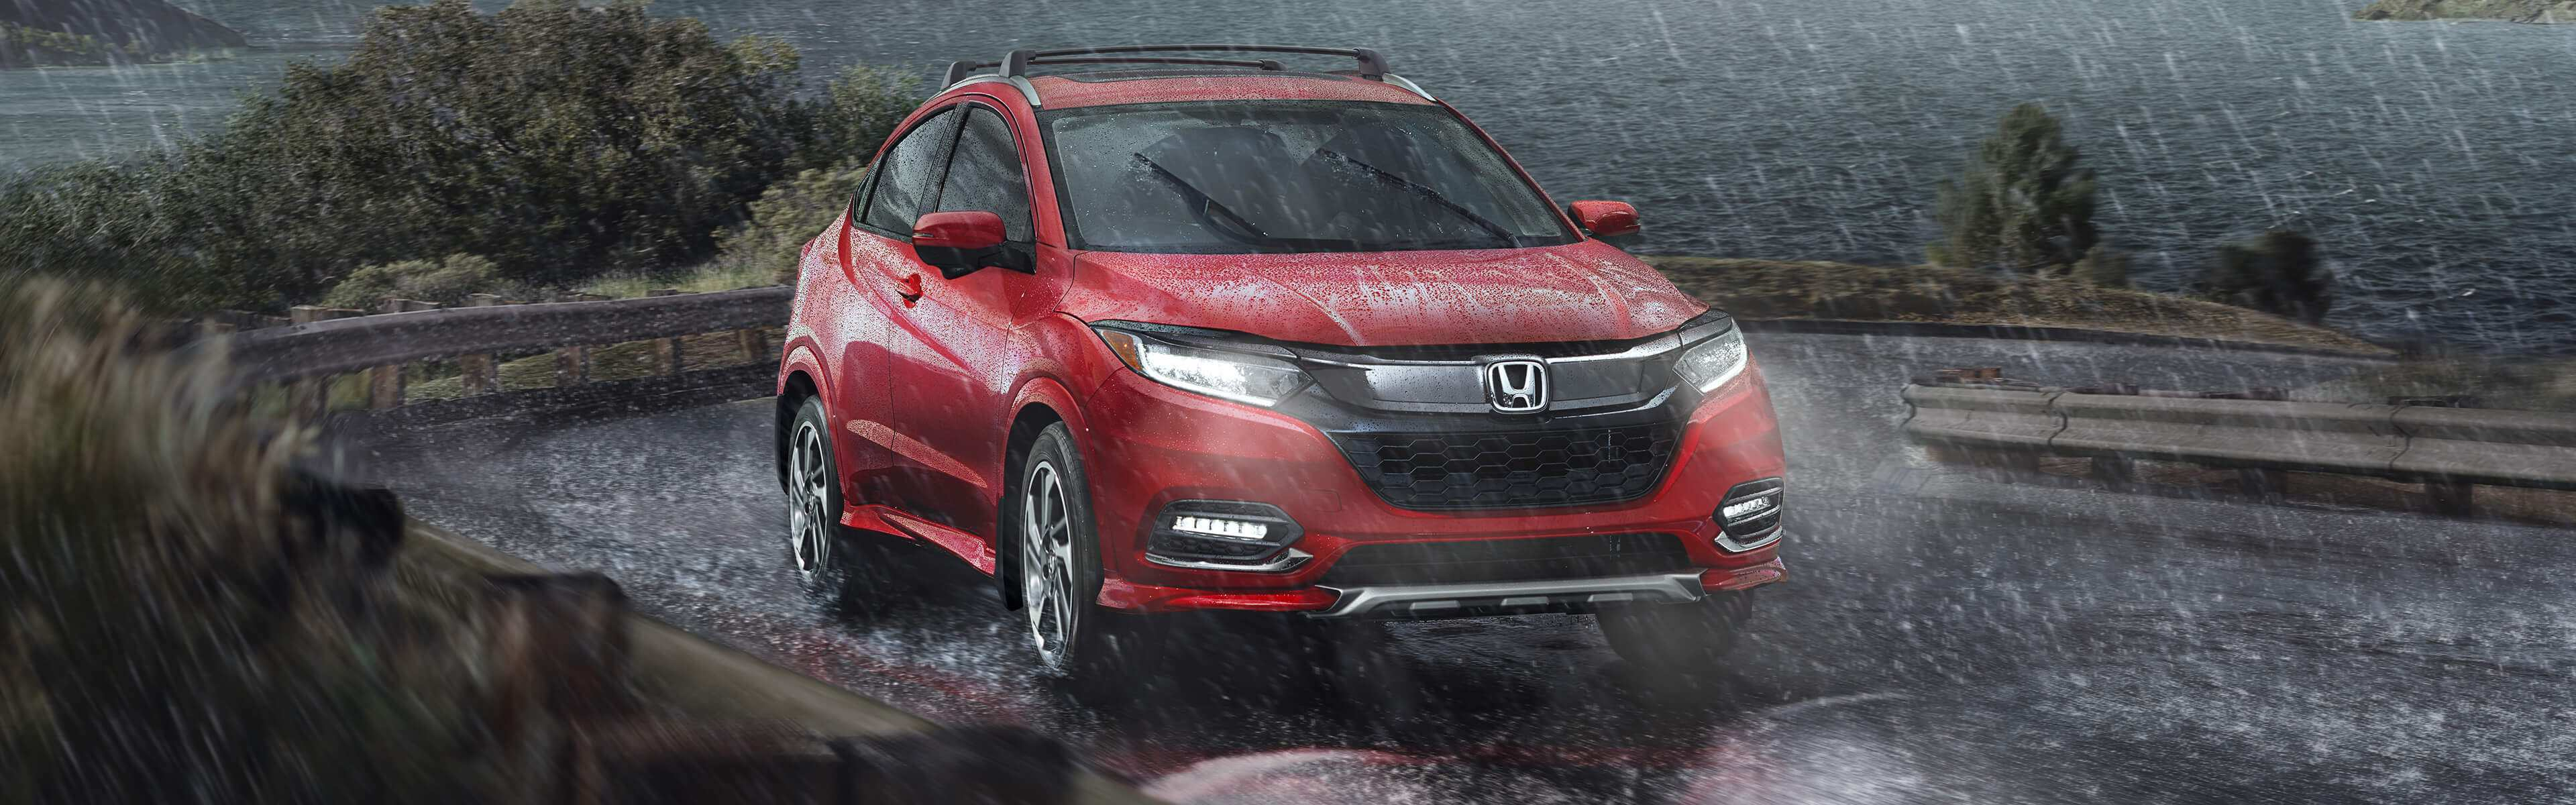 95 New 2019 Honda Hrv Rumors Concept